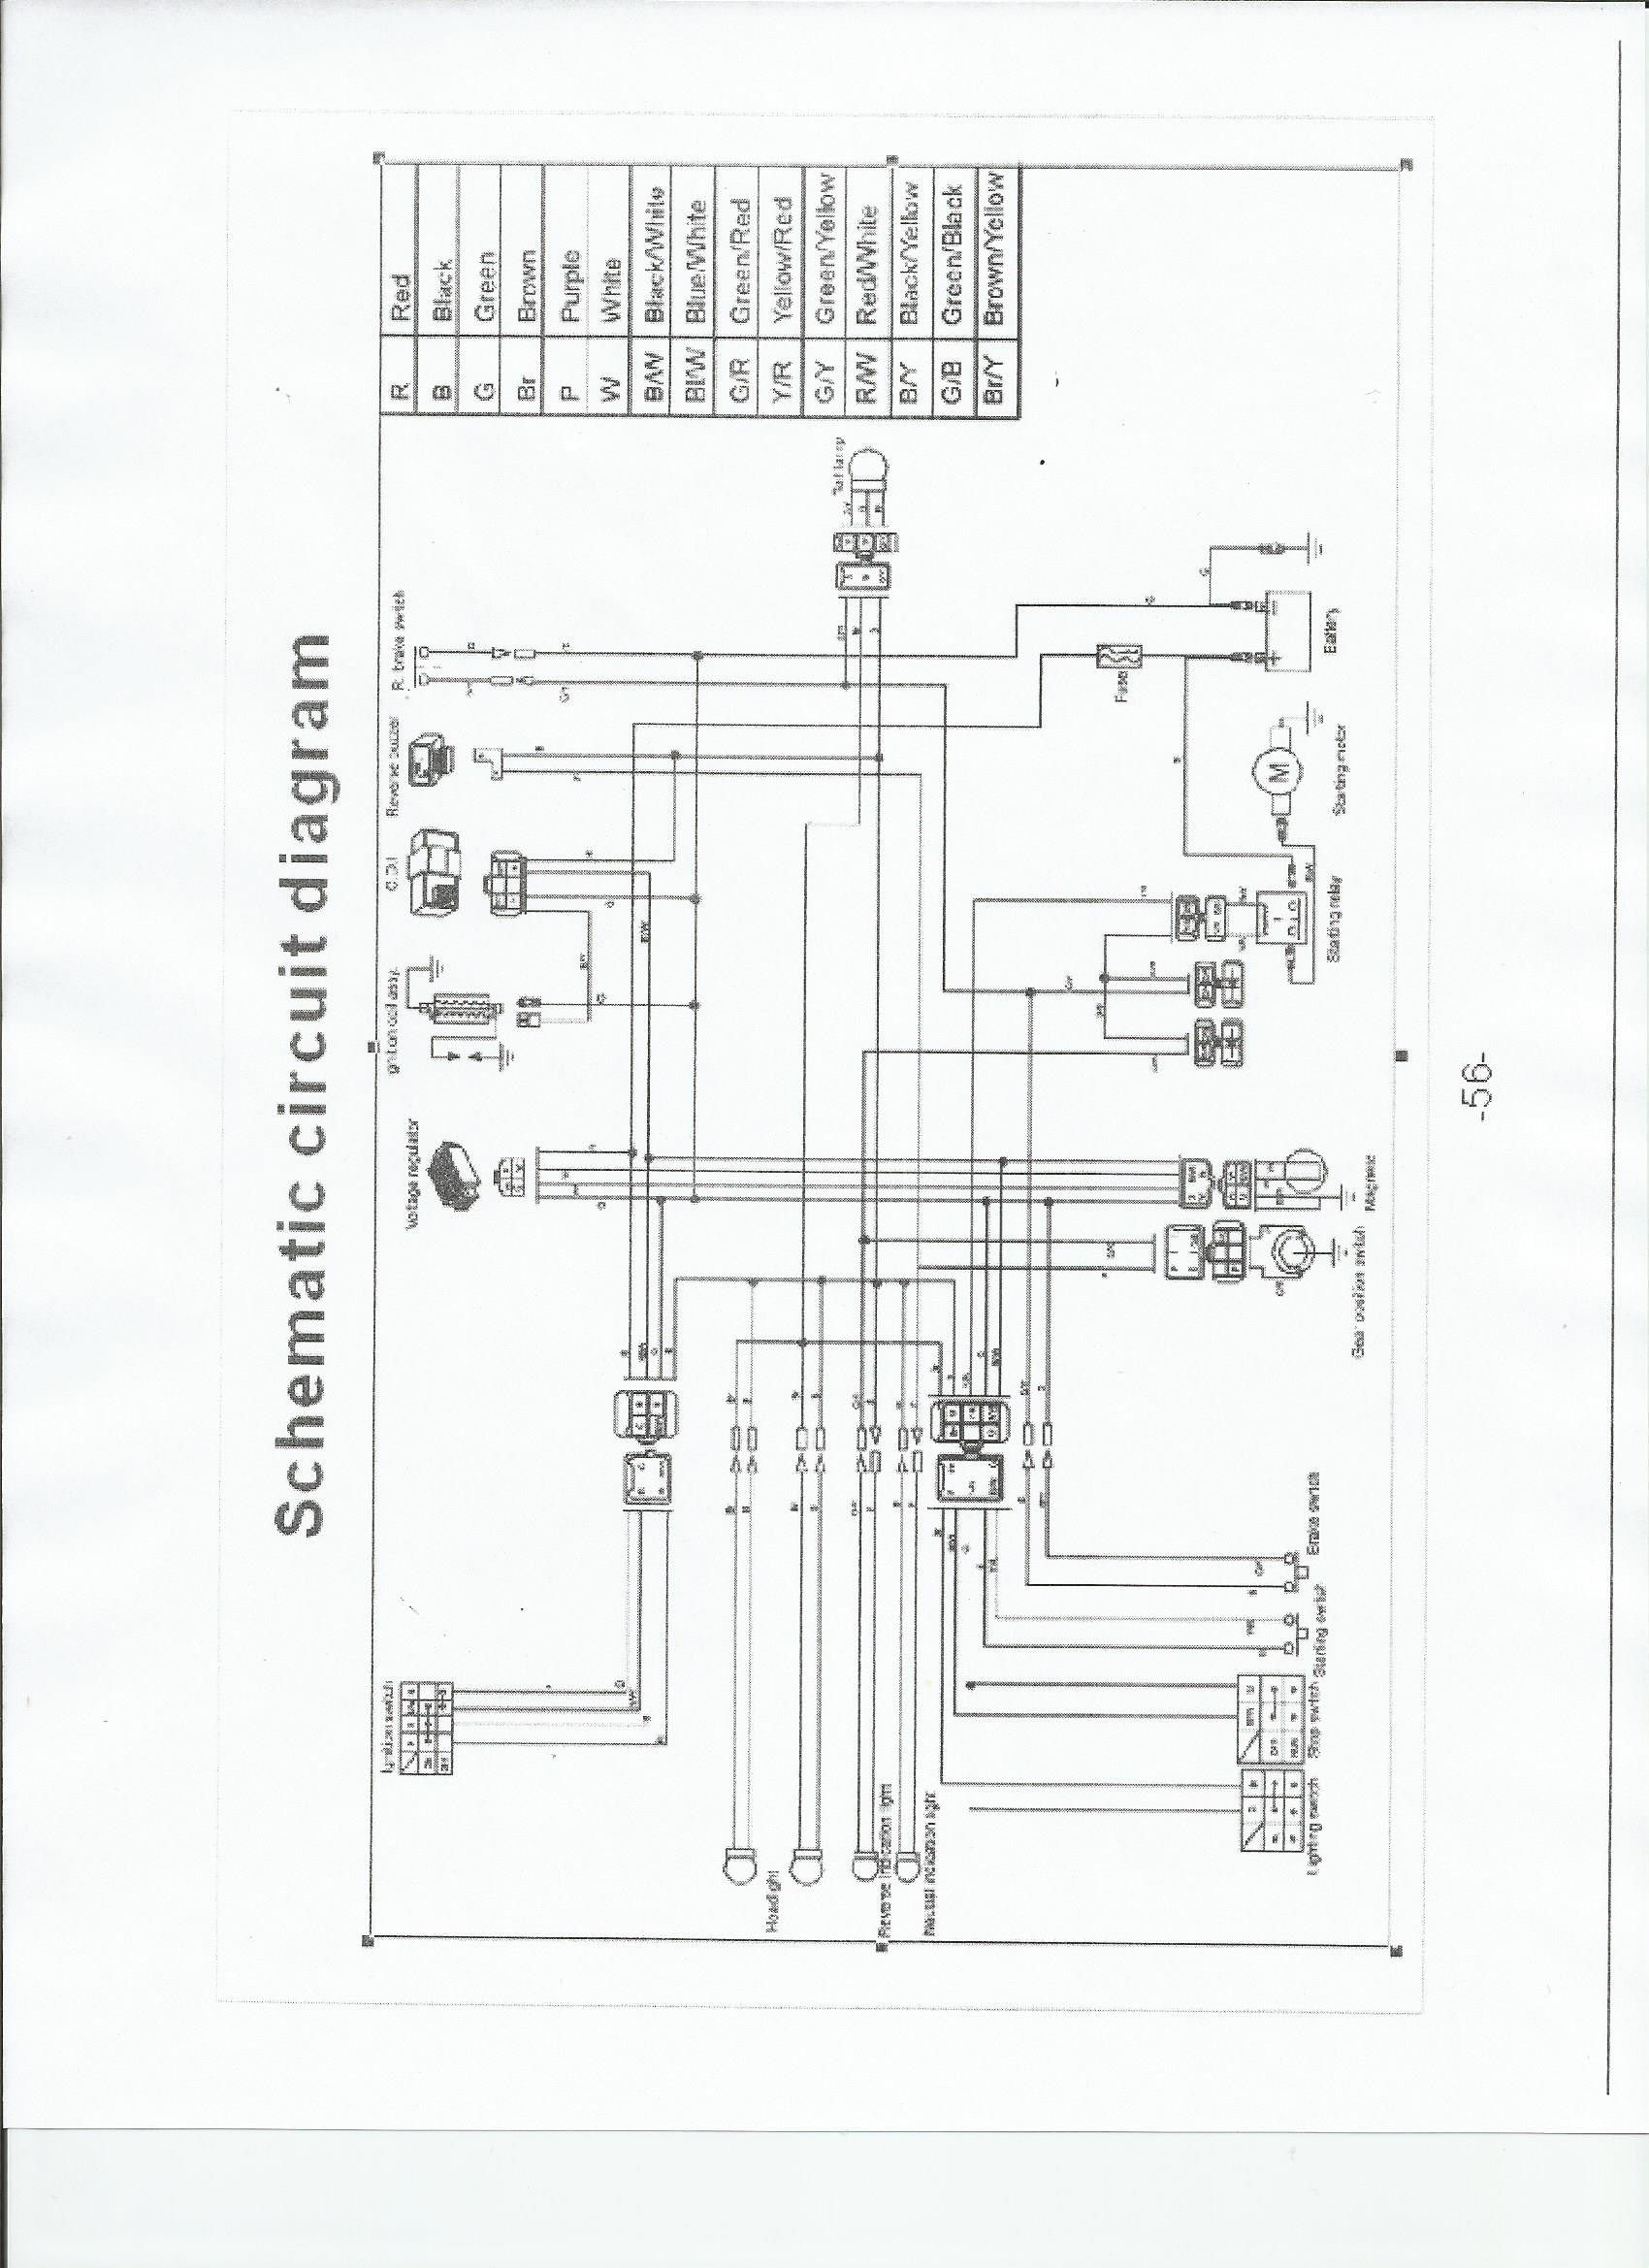 Chinese Quad Wiring Diagram